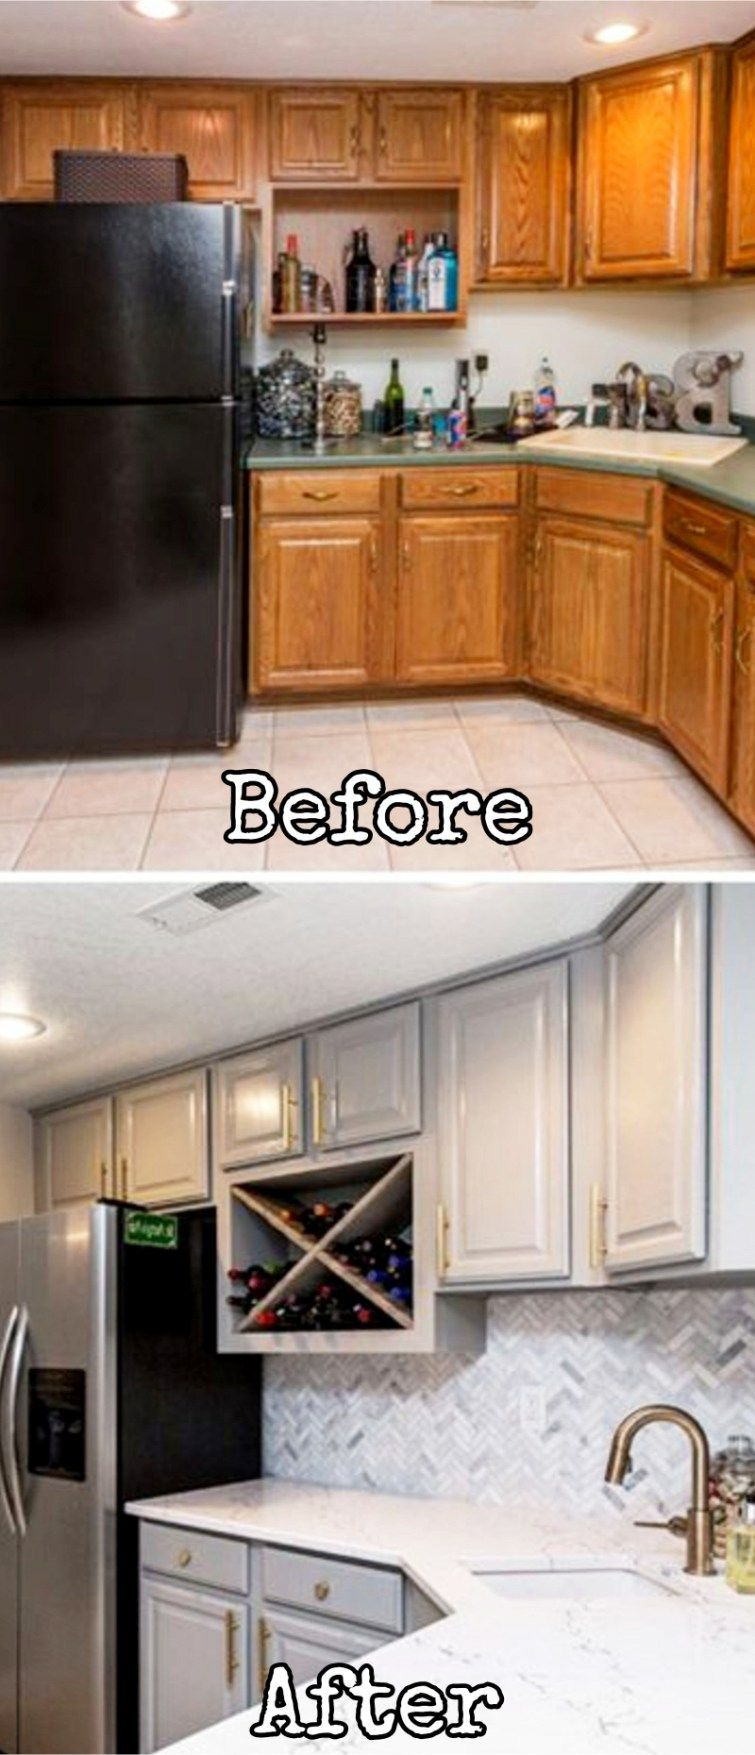 Small Kitchen Remodel  Before And After Pictures Of Small Kitchen Entrancing Small Kitchen Remodels Decorating Inspiration